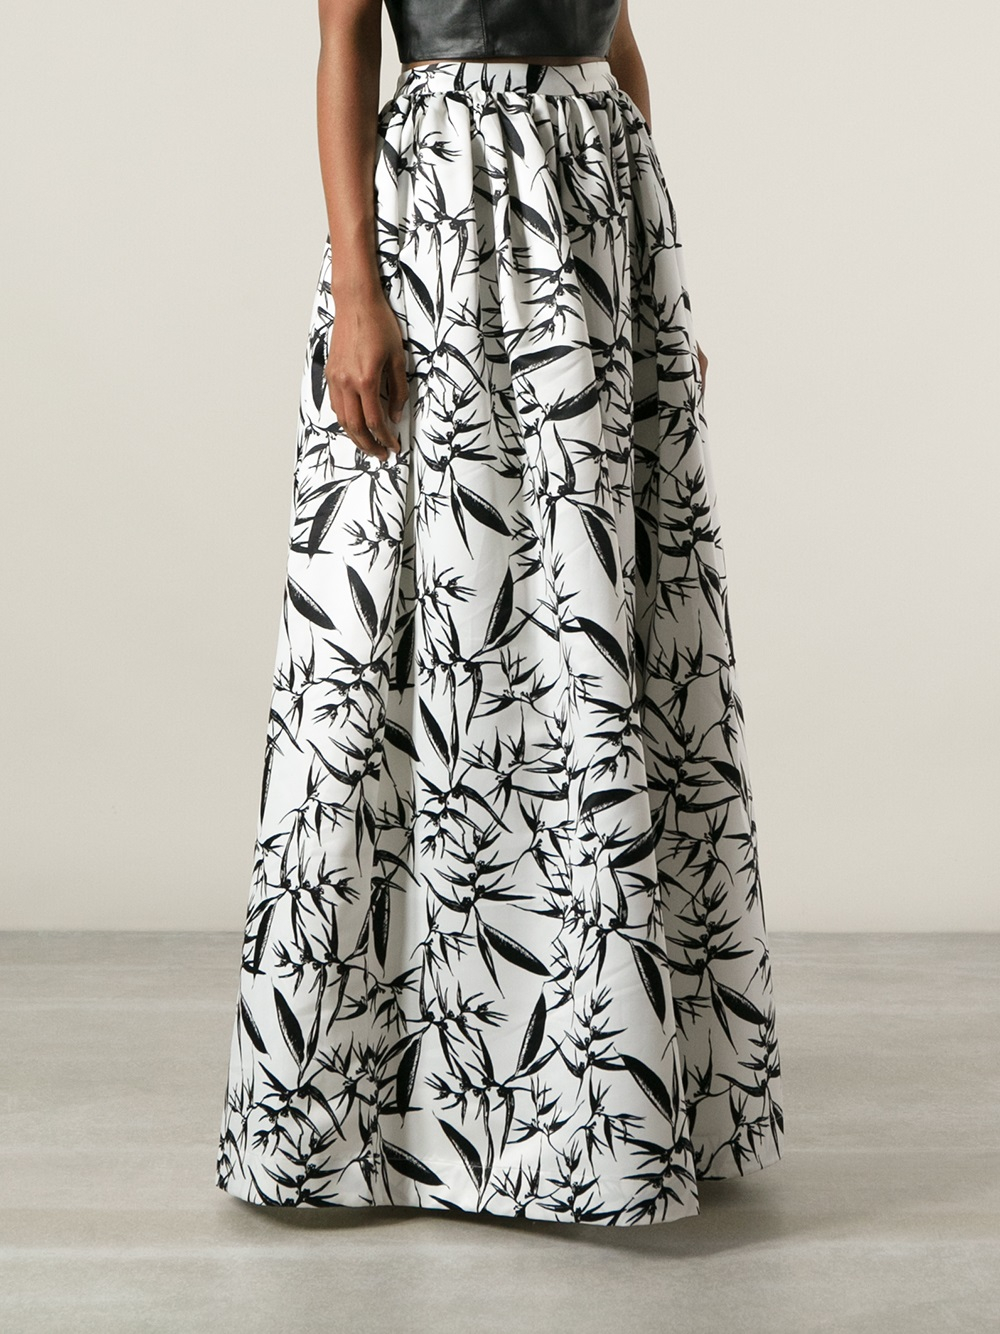 Alice   olivia Printed Maxi Skirt in Black | Lyst